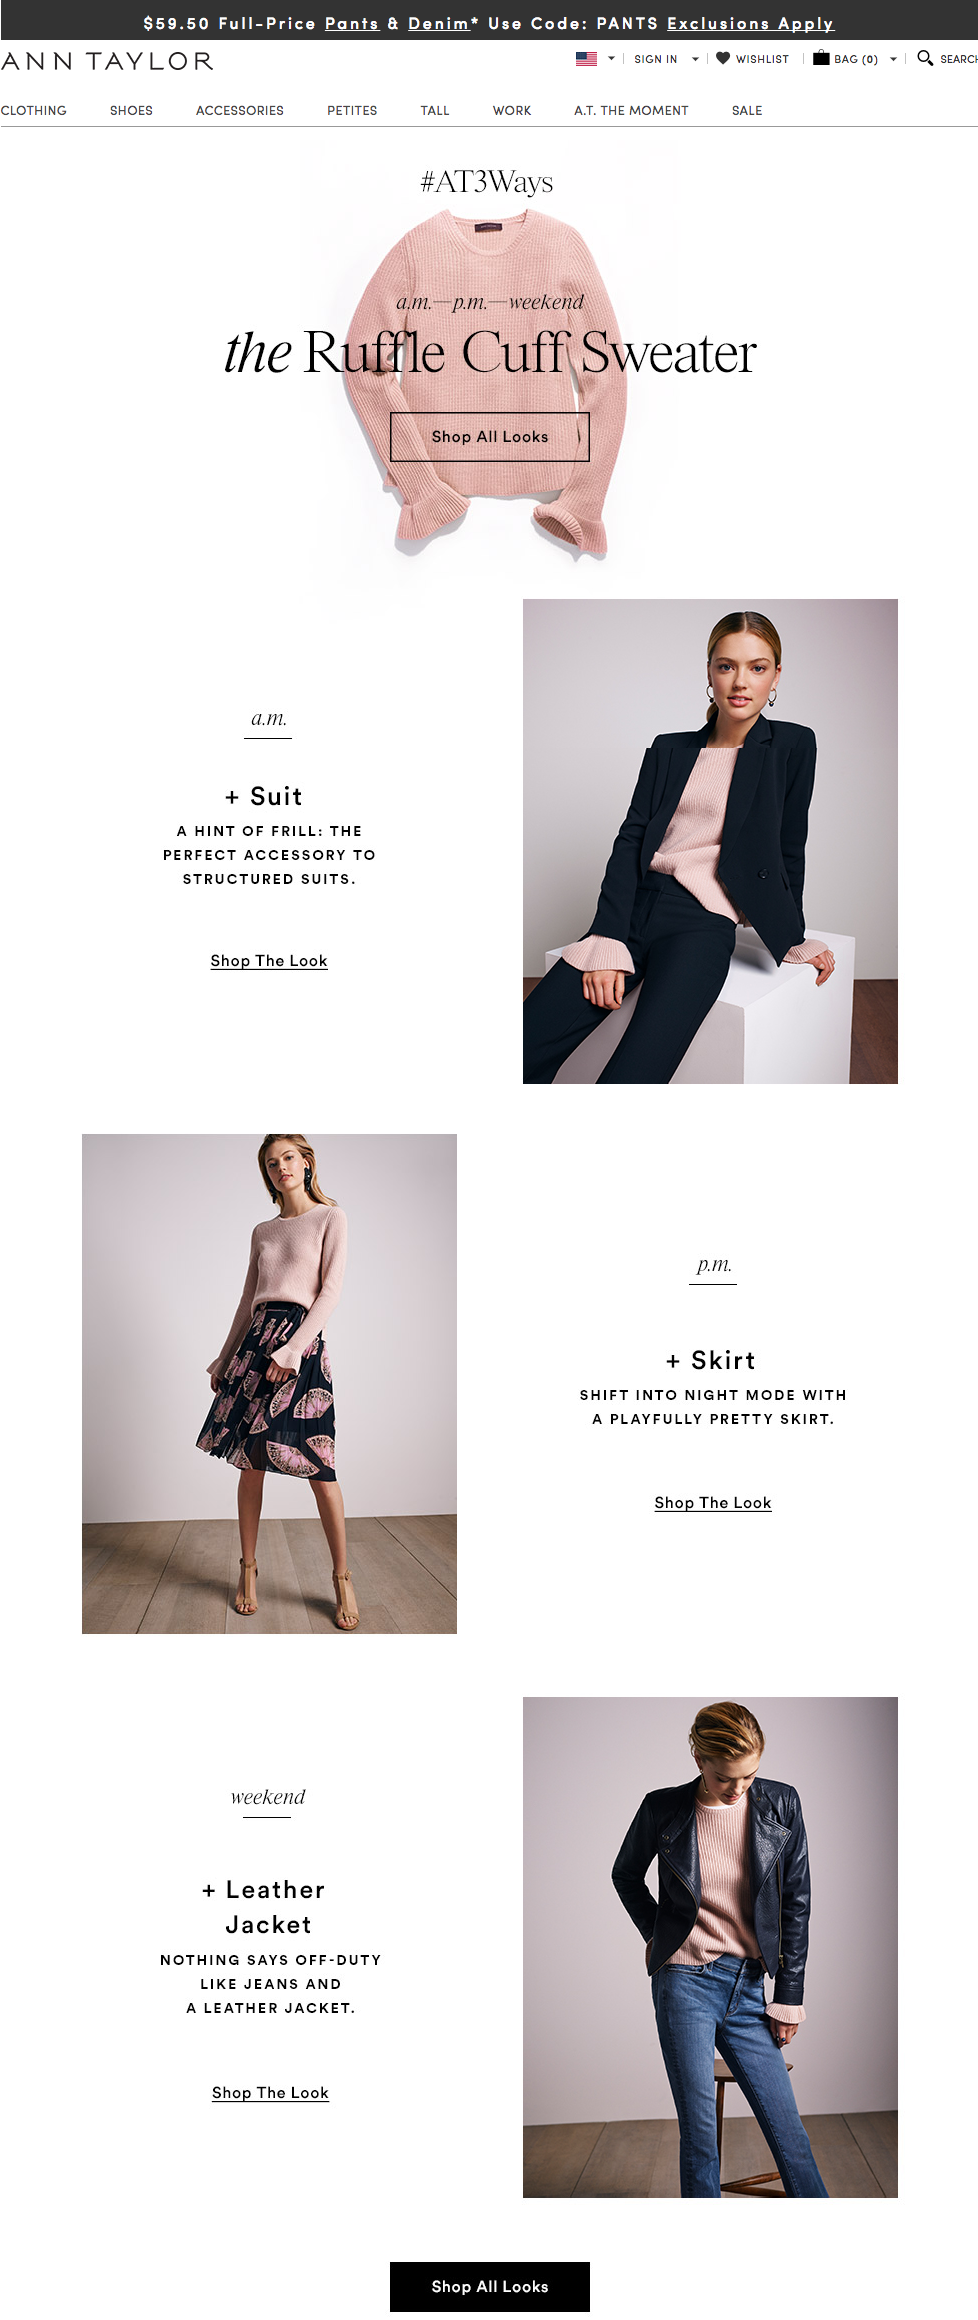 screencapture-anntaylor-ann-at3ways-cat2170002-1486133530612.png